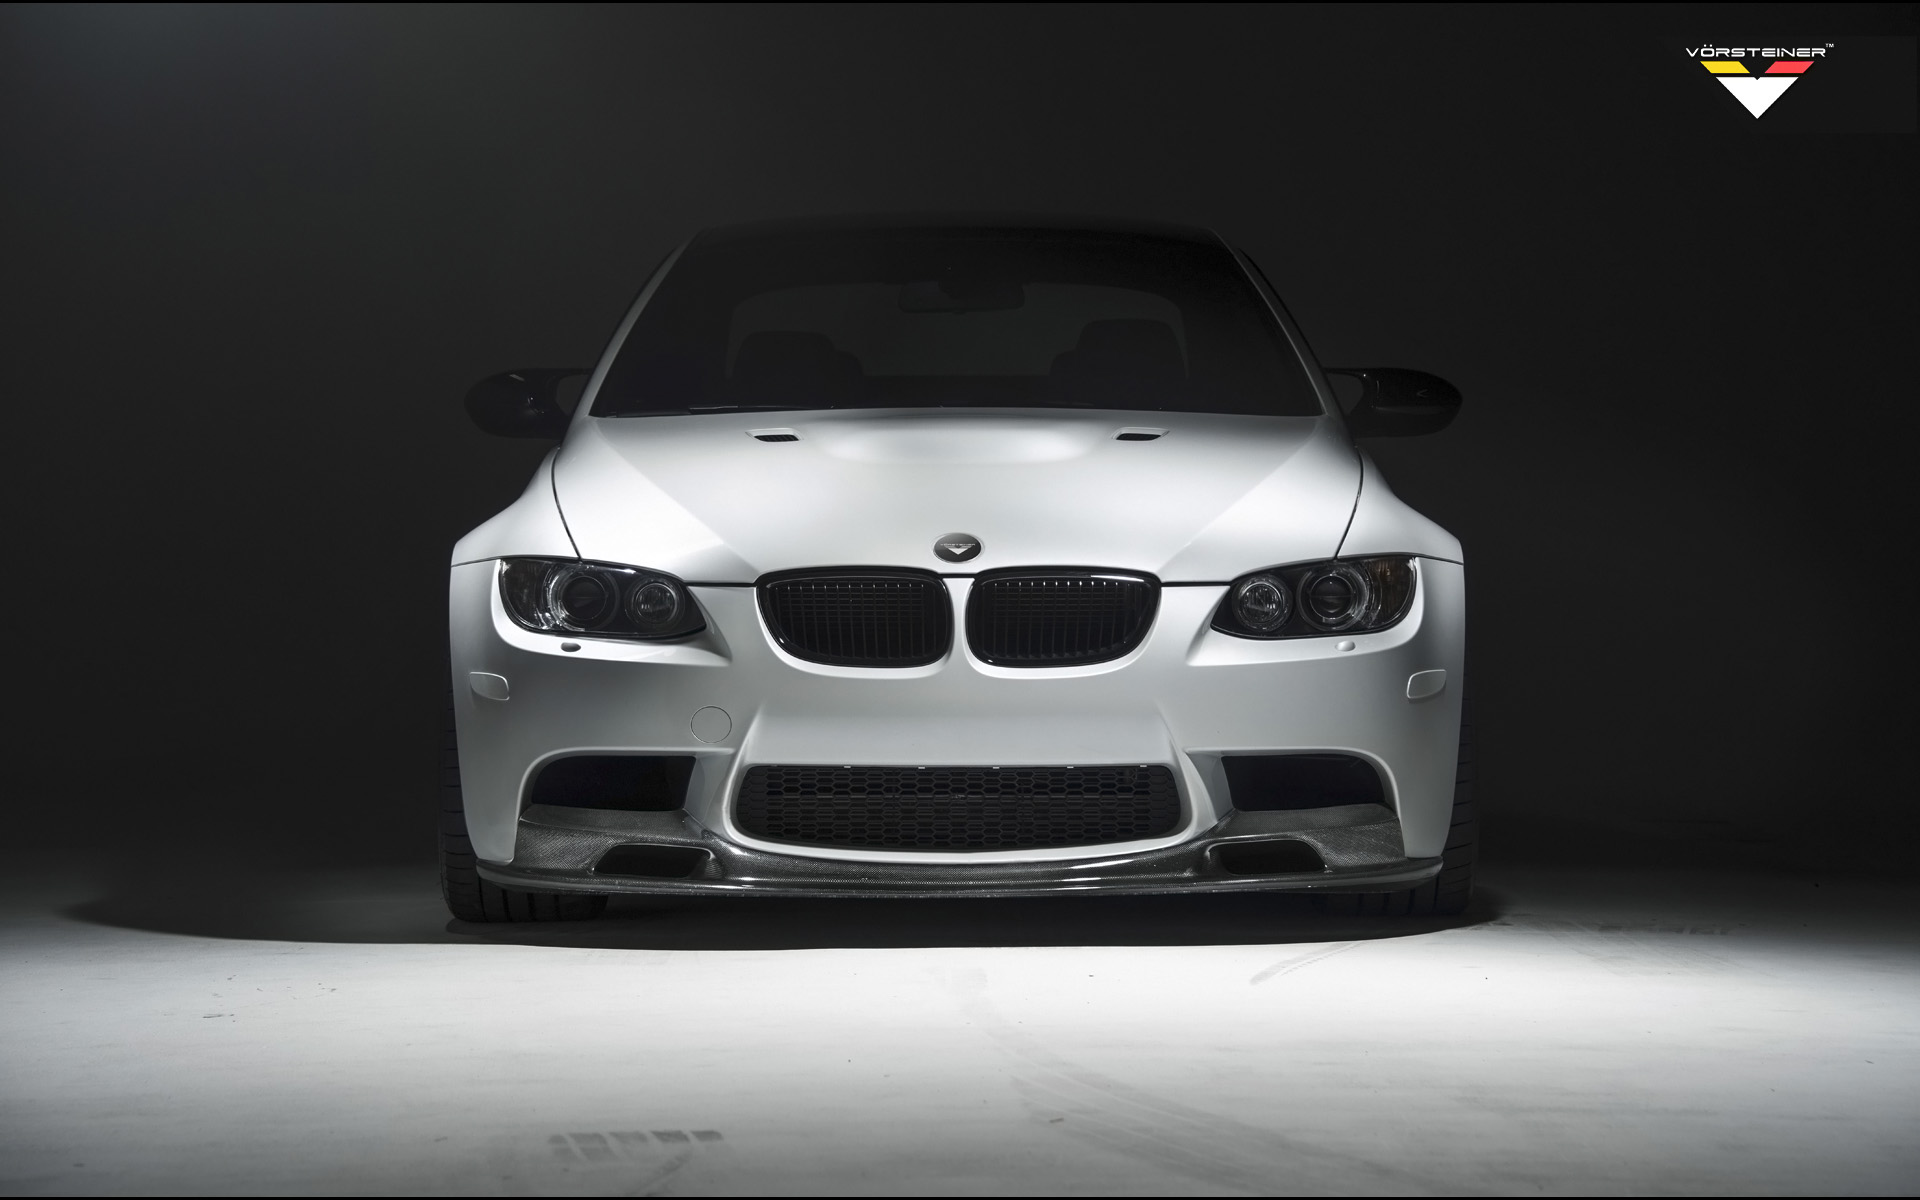 2014 vorsteiner bmw e92 m3 wallpaper | hd car wallpapers | id #4462